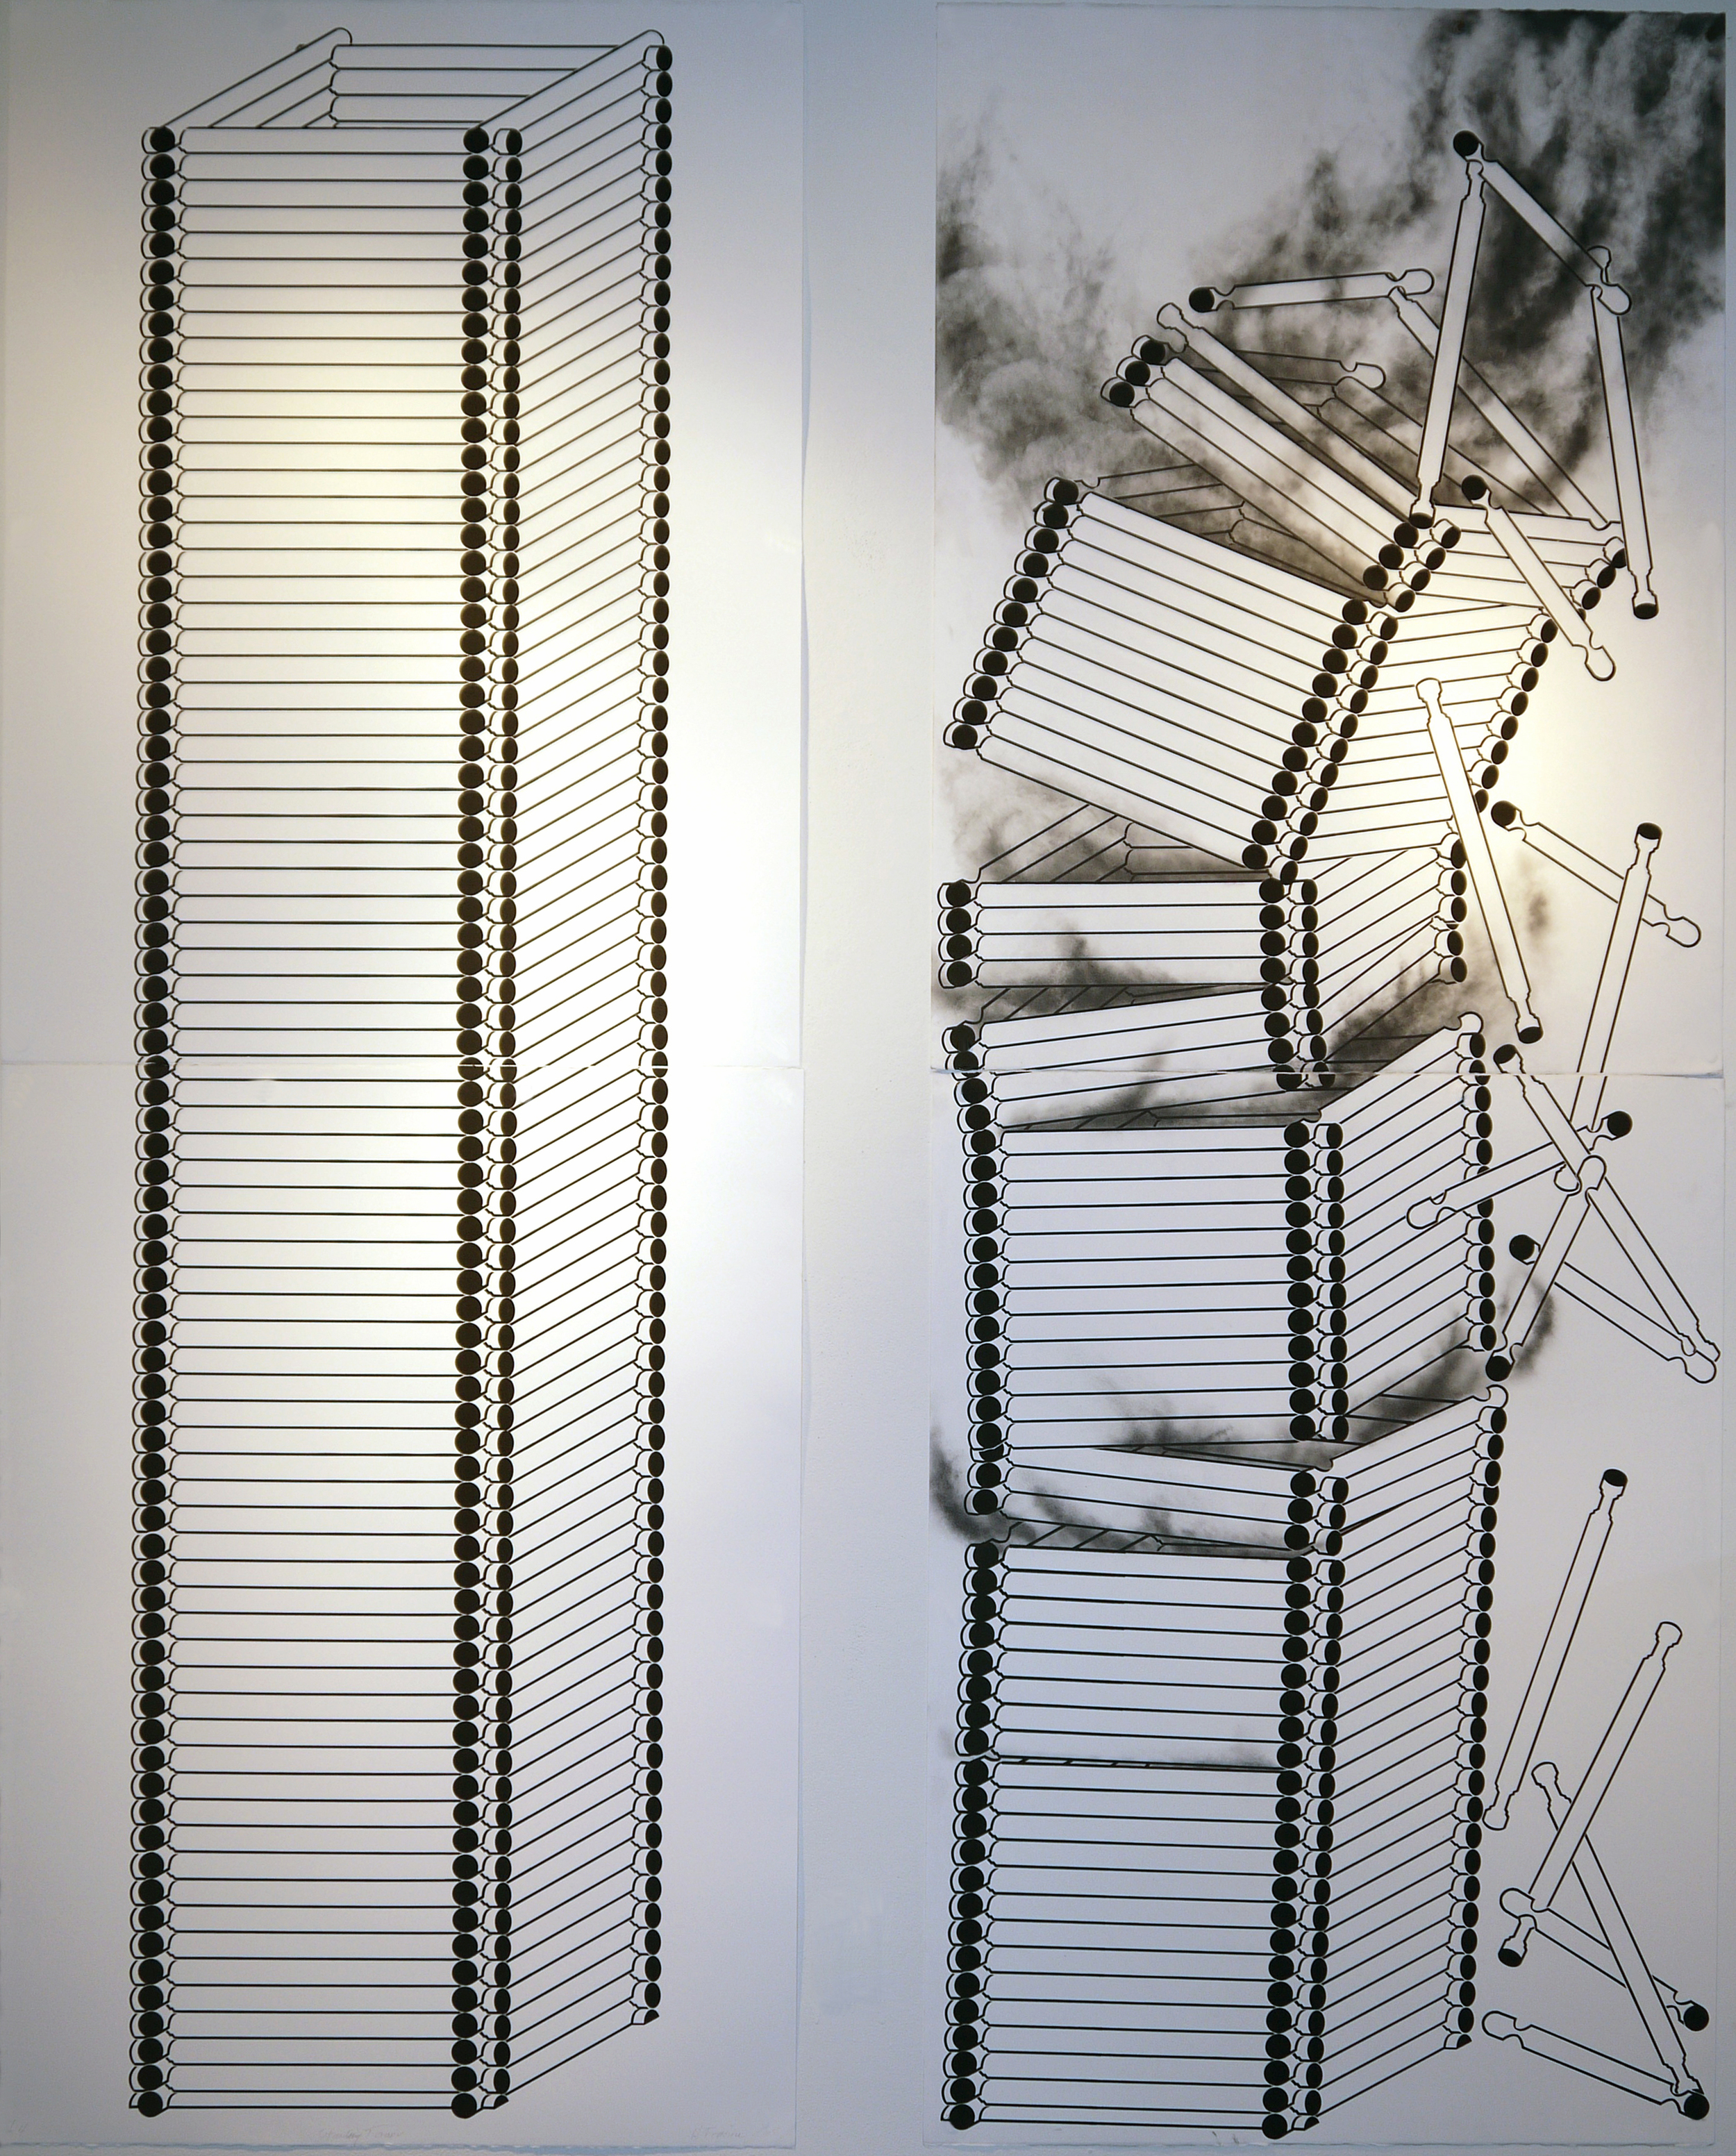 "Standing Tower Burning Tower, 2015, screenprint diptych, ea image 35"" x 7' 10"""